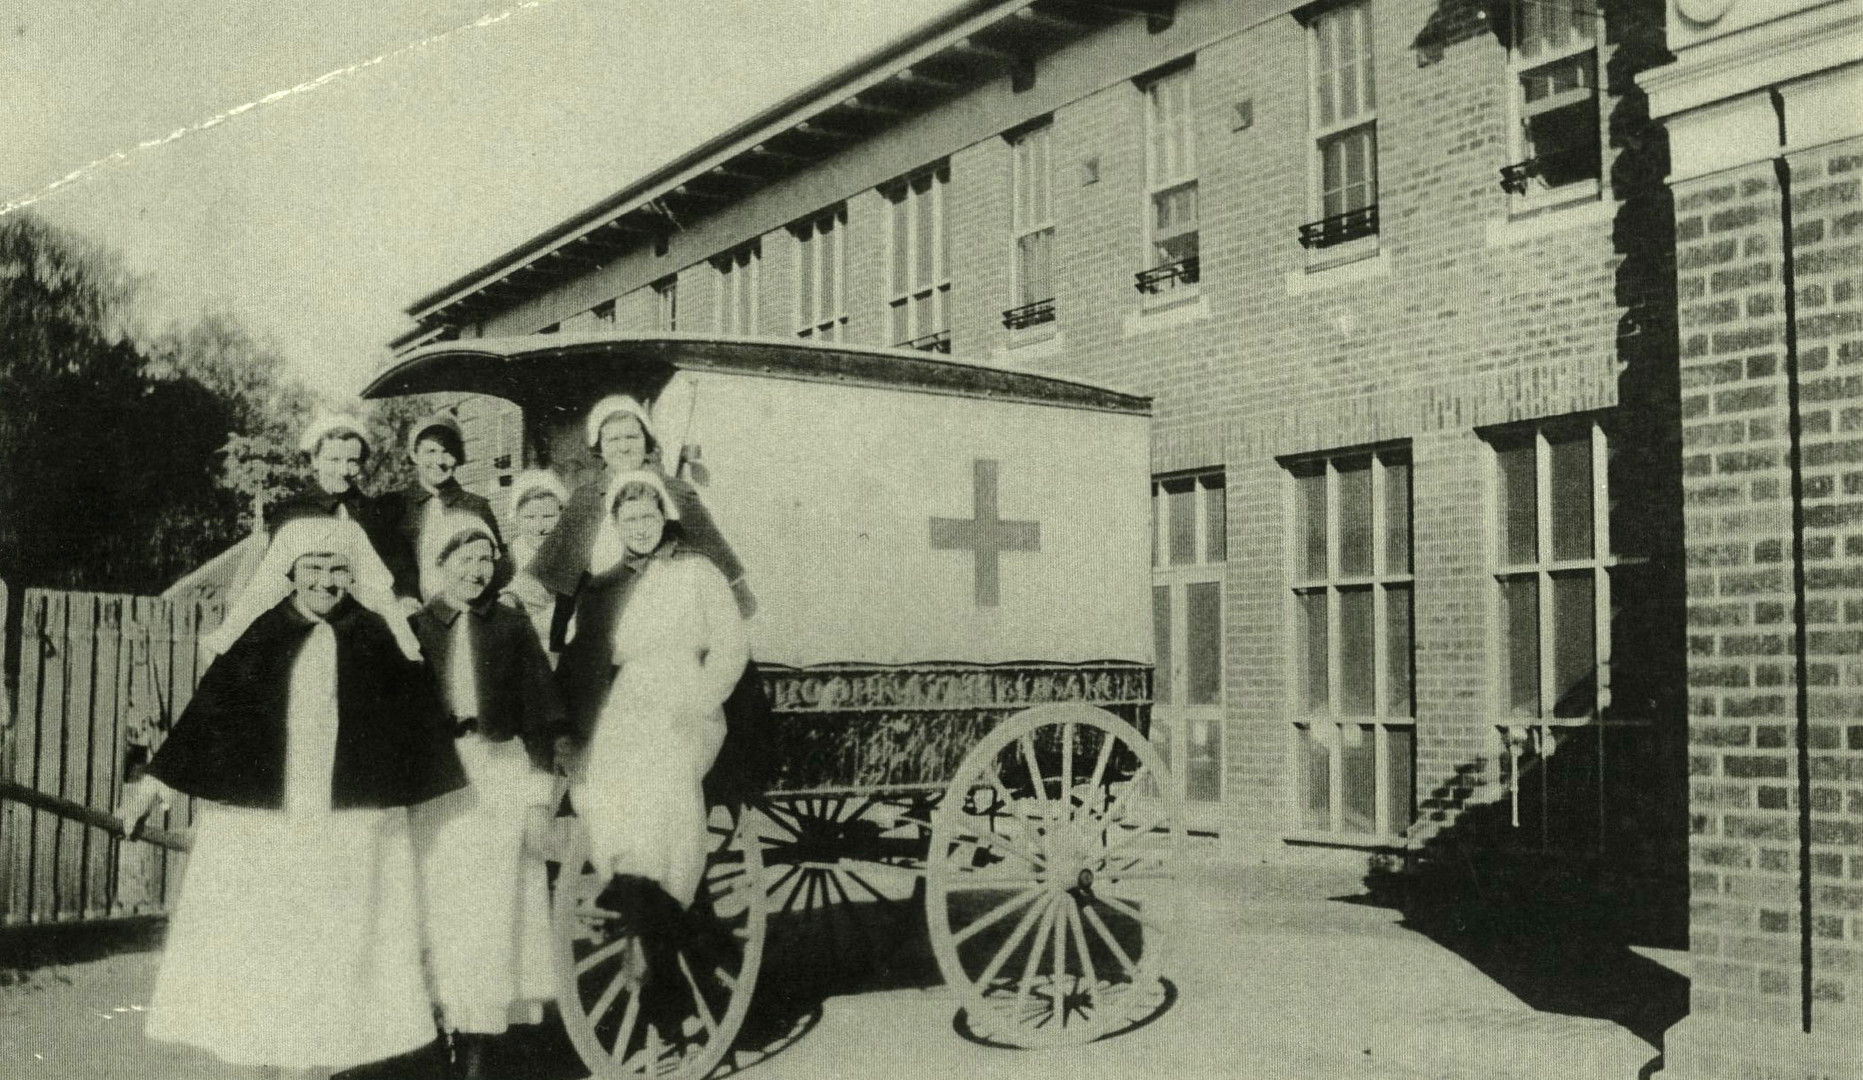 Mooroopna_Hospital_Horse_Drawn_Ambulance